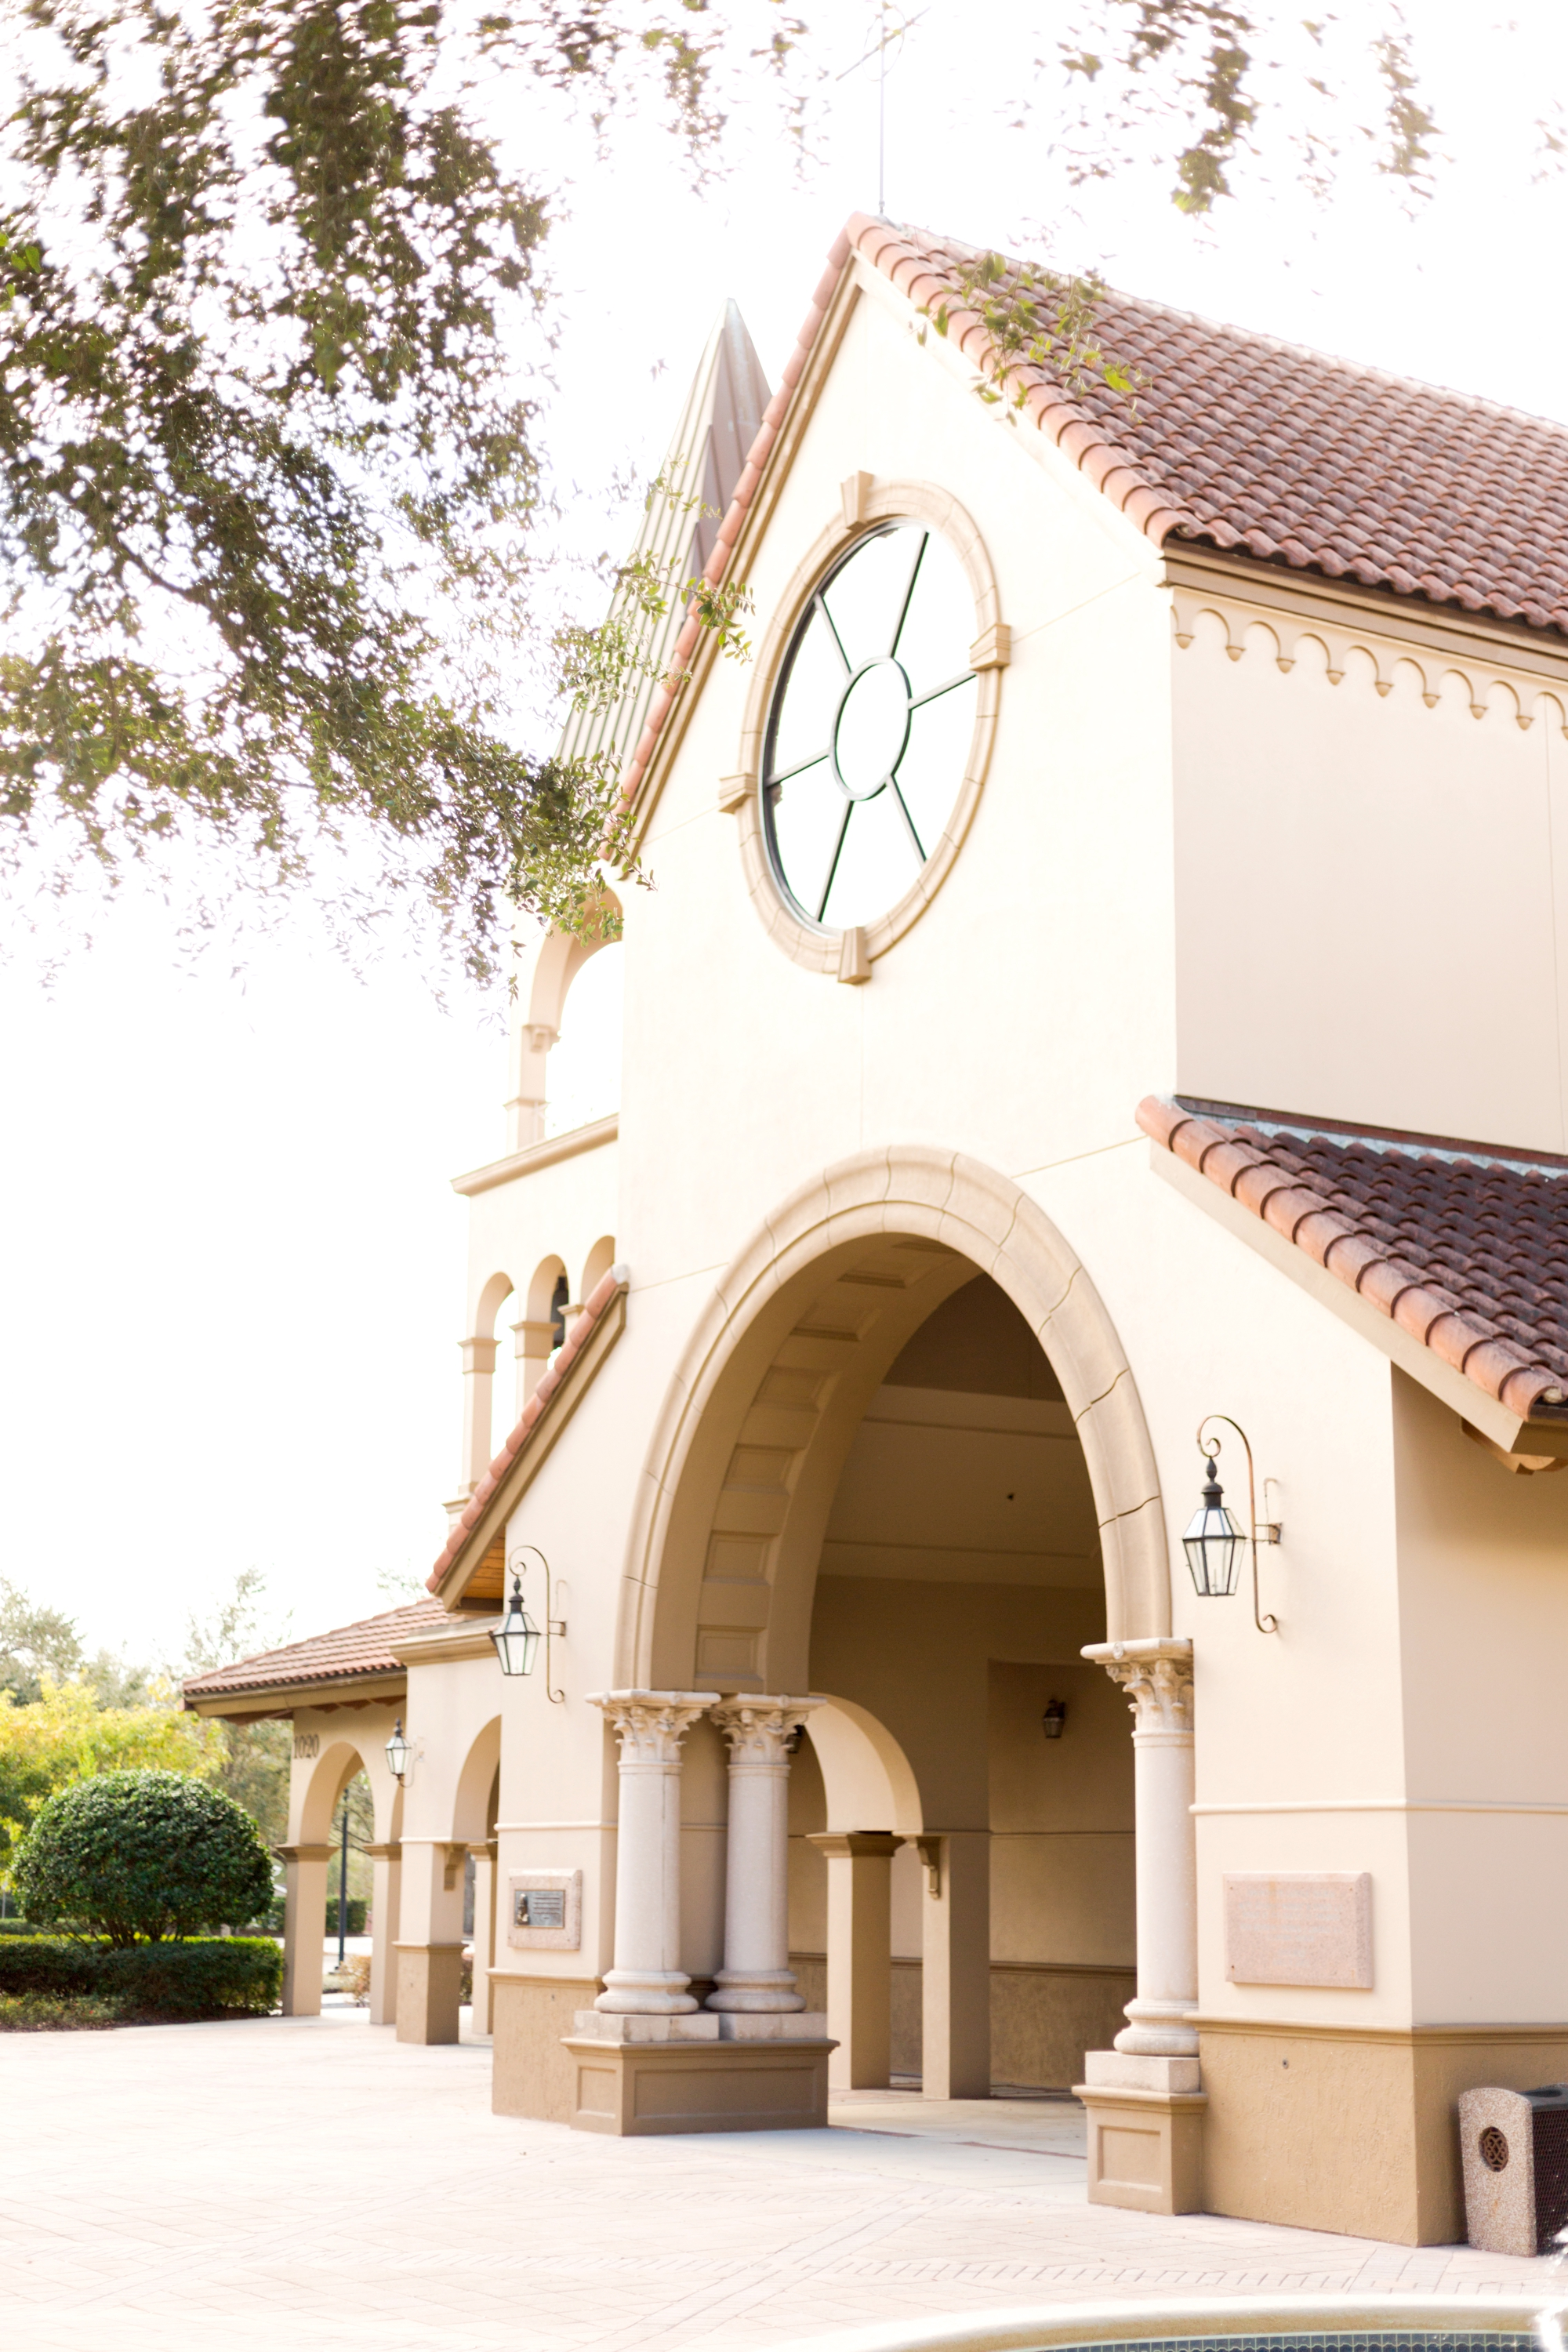 Annunciation catholic church wedding lake mary florida